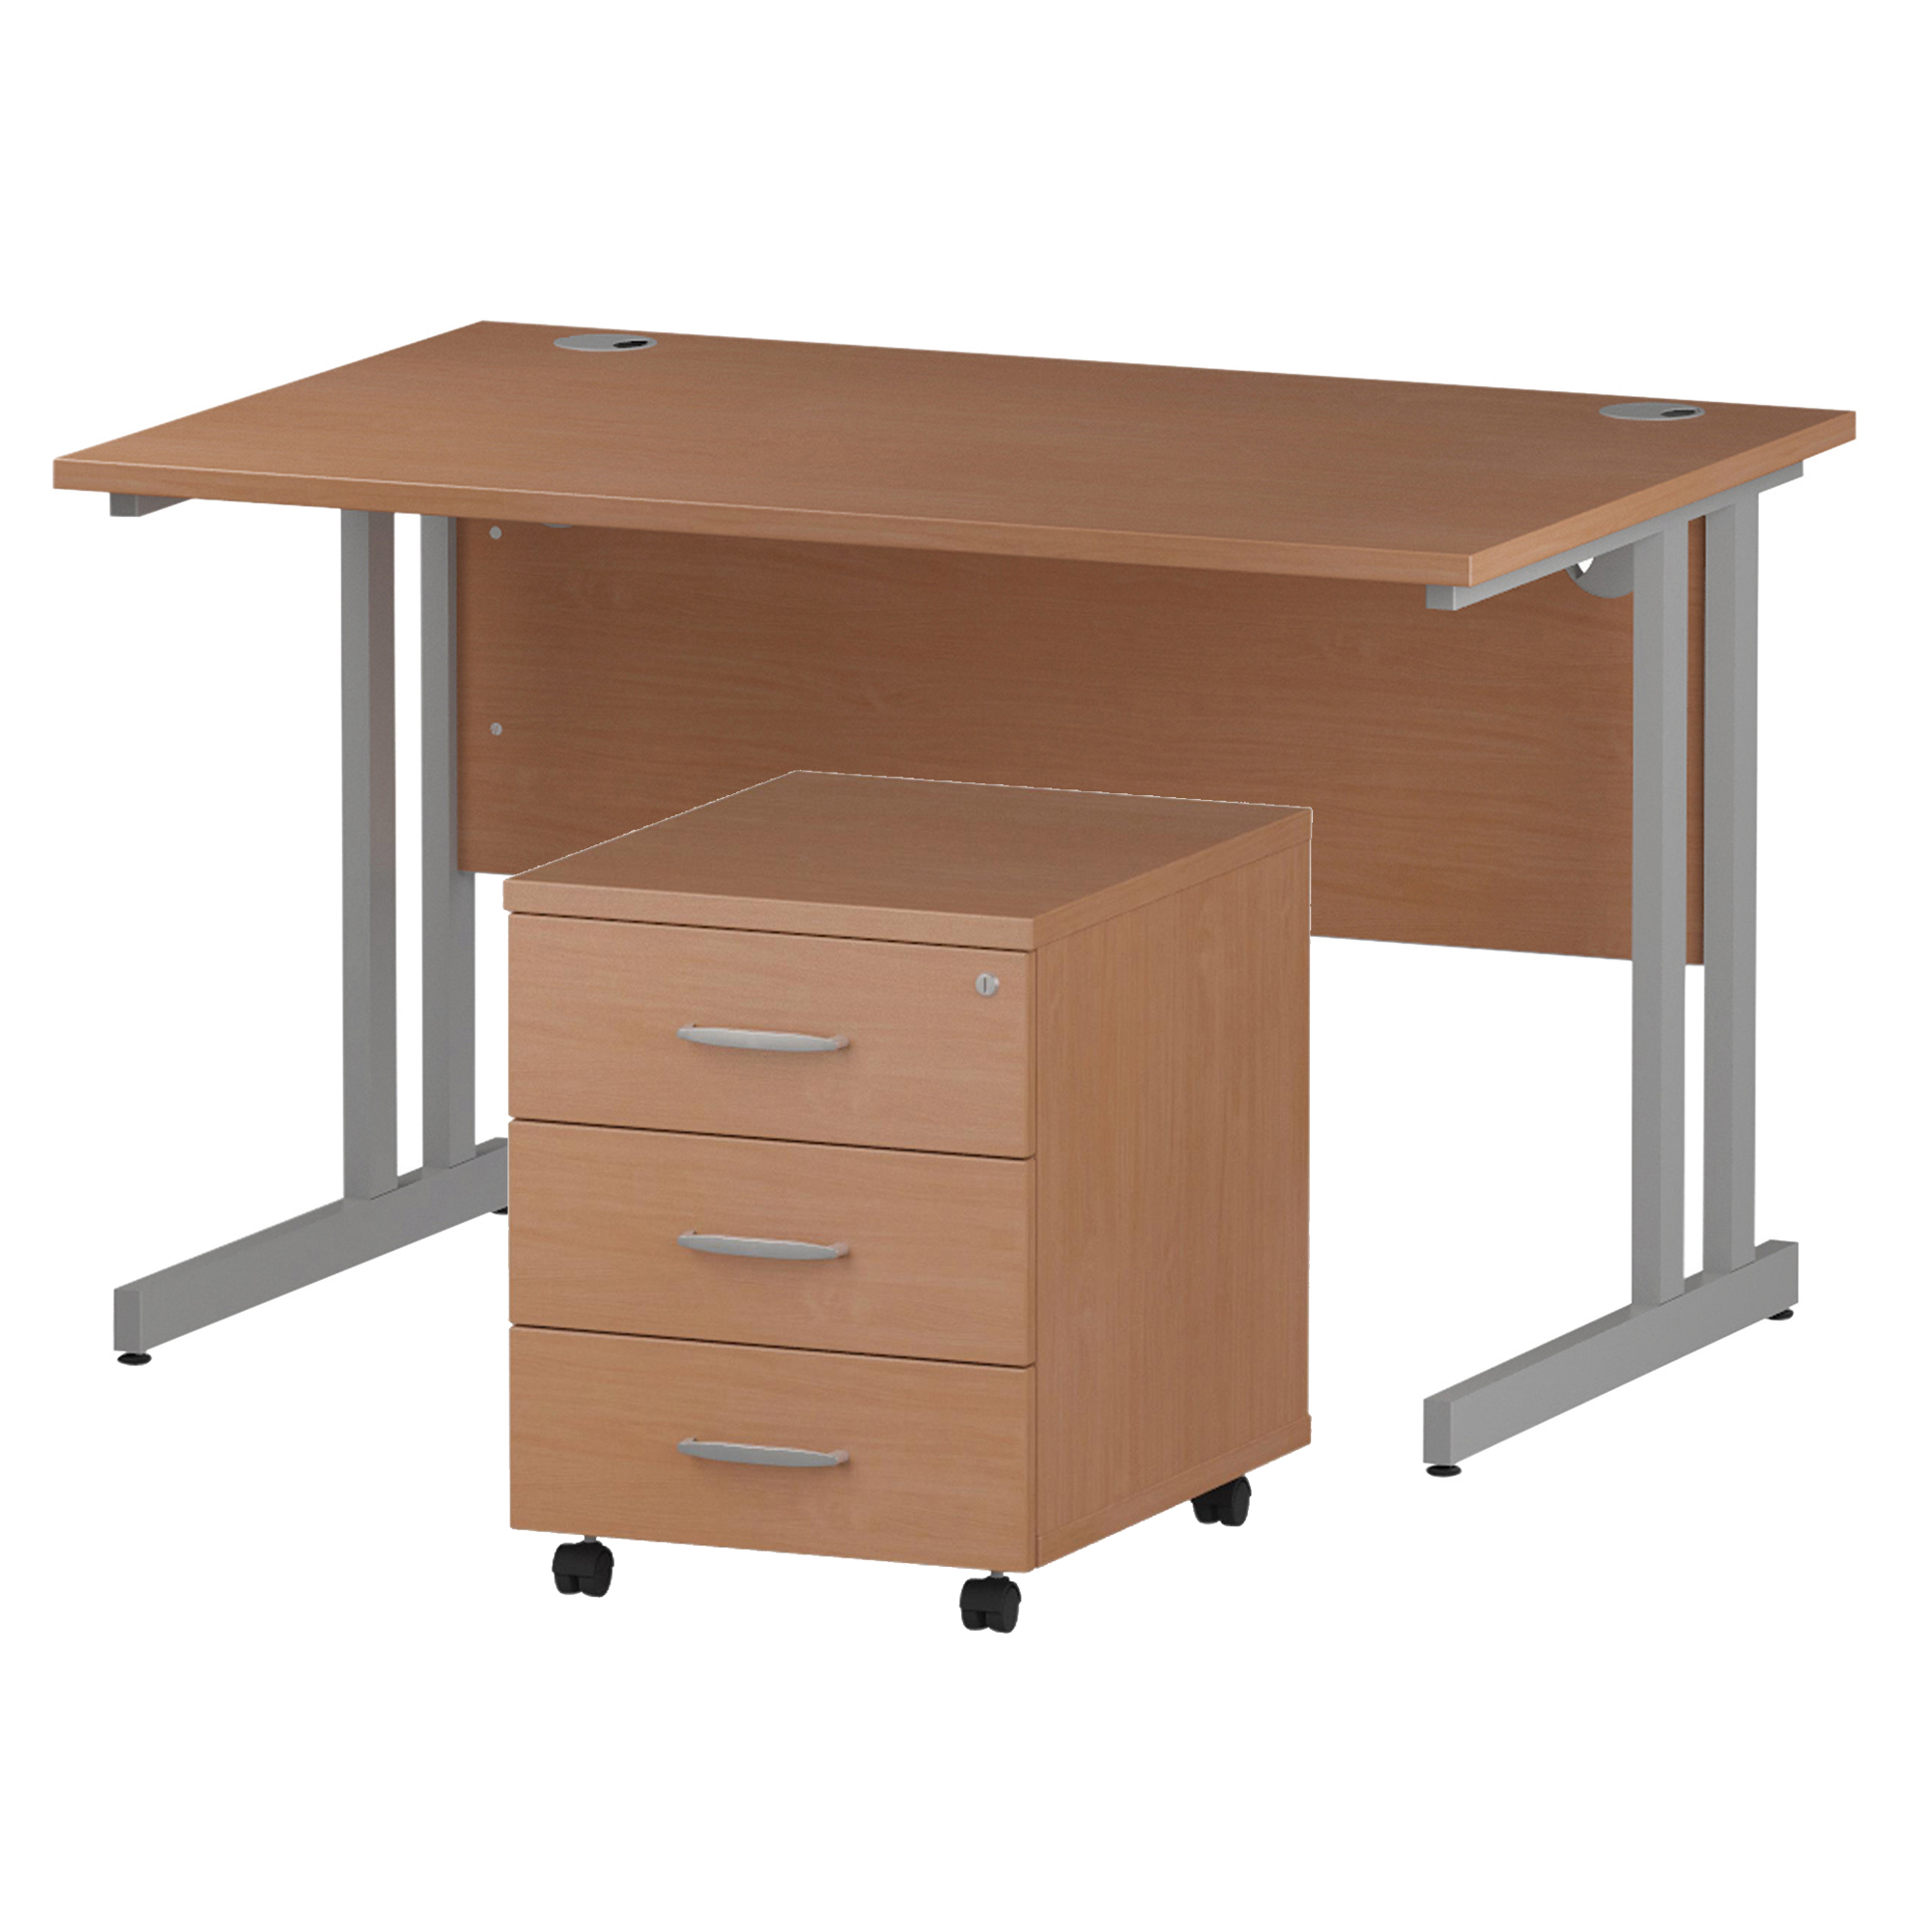 Desks Trexus Cantilever Desk 1200x800 & 3 Drawer Pedestal Beech Bundle Offer Feb-Apr 2020